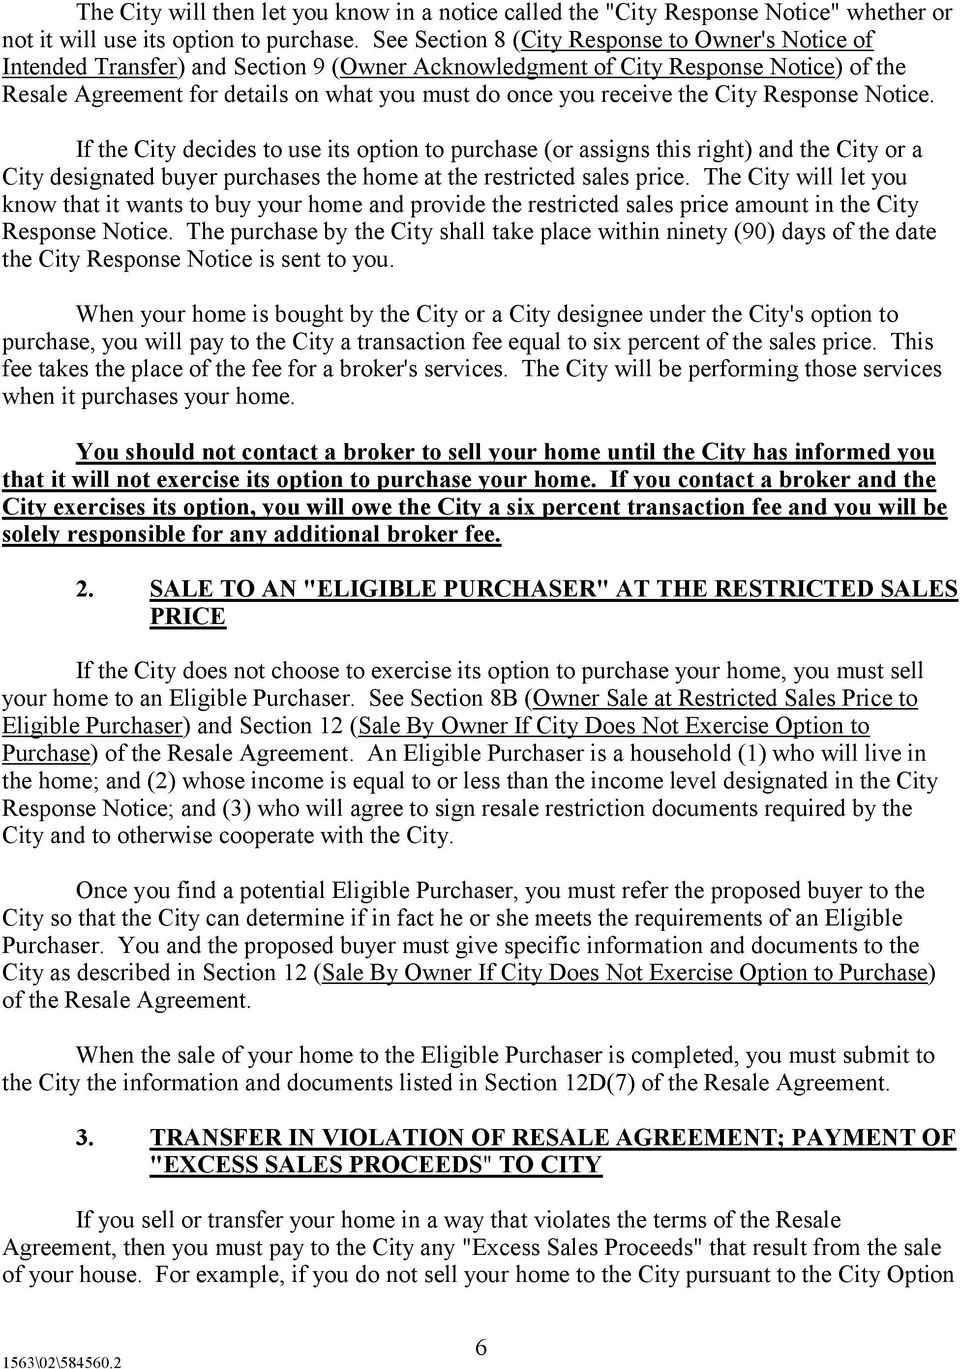 receive the City Response Notice. If the City decides to use its option to purchase (or assigns this right) and the City or a City designated buyer purchases the home at the restricted sales price.